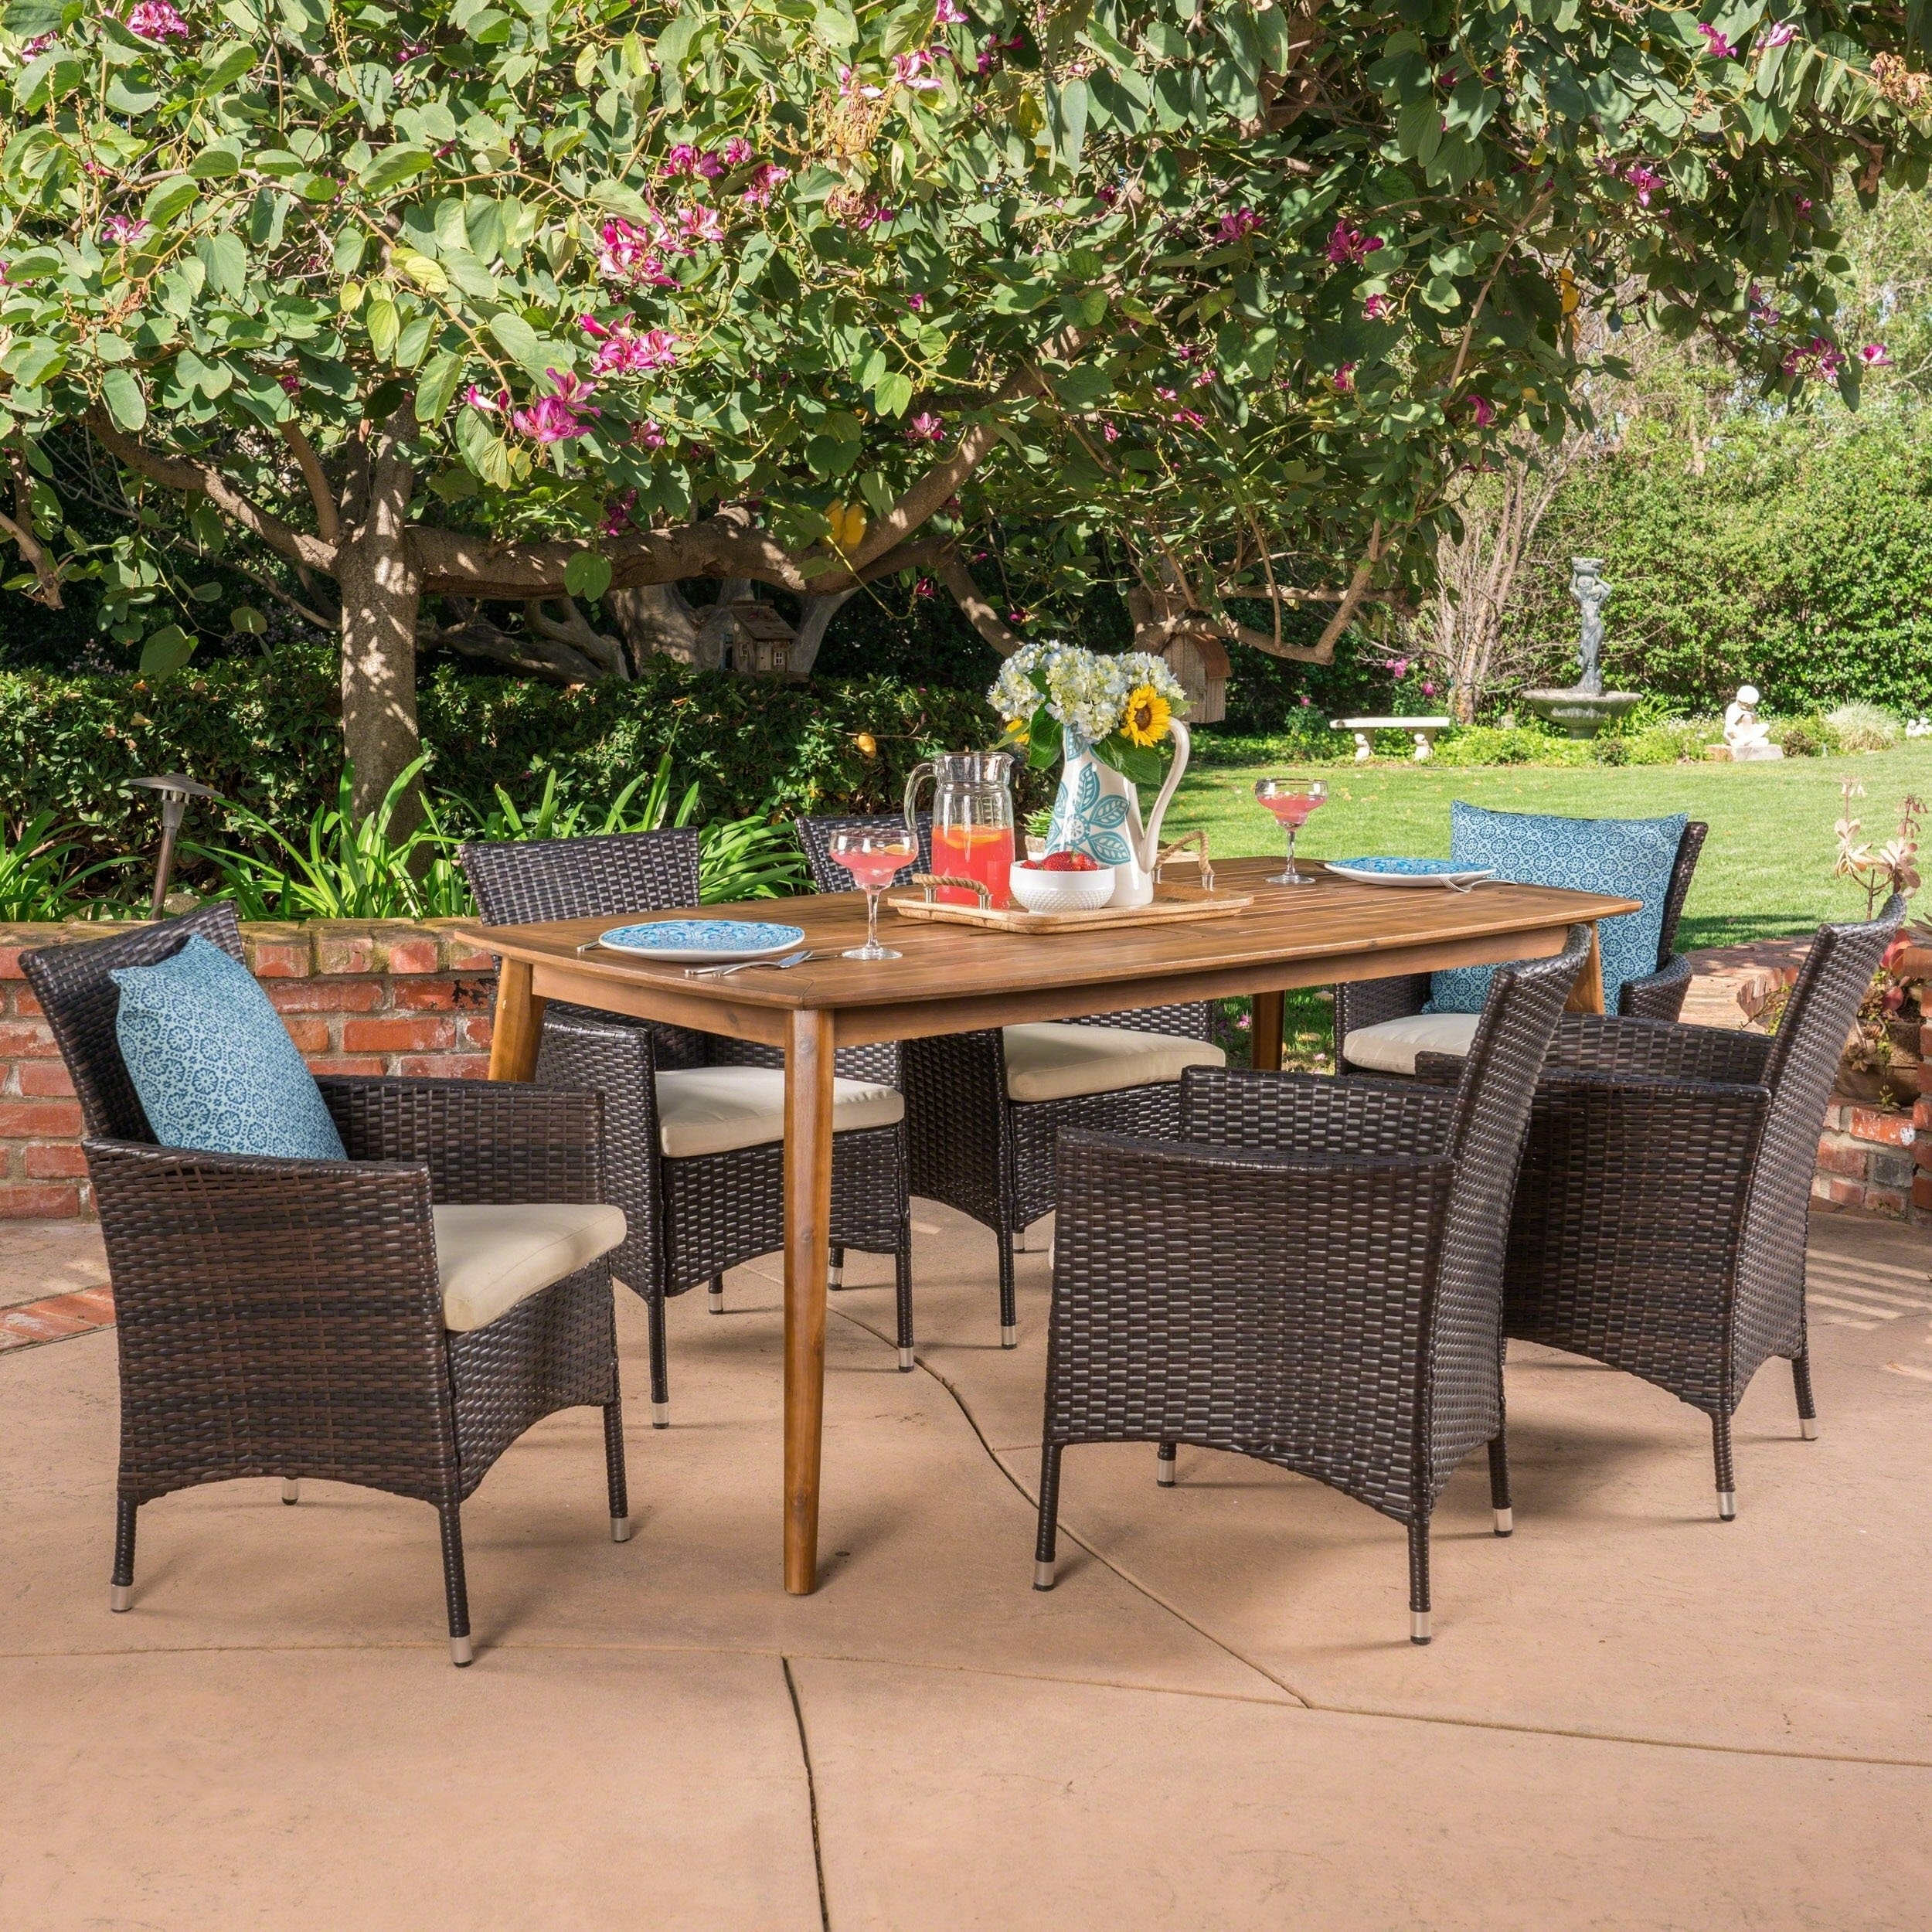 Shop Jaxon Outdoor 7 Piece Multibrown Pe Wicker Dining Set With Regarding Most Recently Released Jaxon Grey 5 Piece Round Extension Dining Sets With Upholstered Chairs (View 5 of 20)